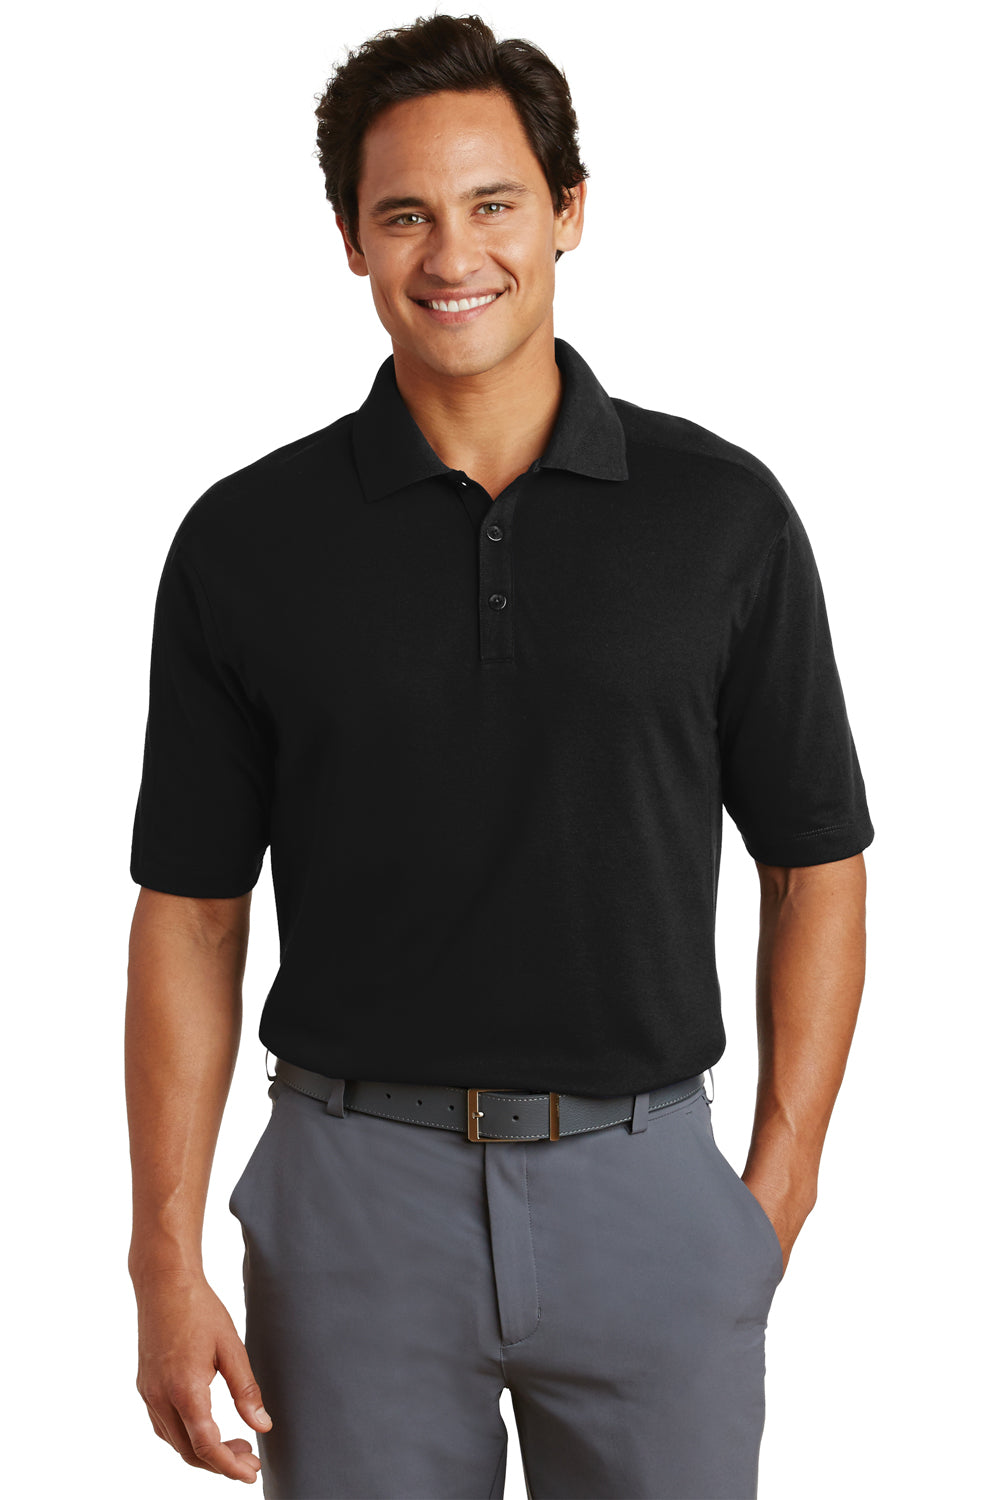 Nike 244612 Mens Dri-Fit Moisture Wicking Short Sleeve Polo Shirt Black Front